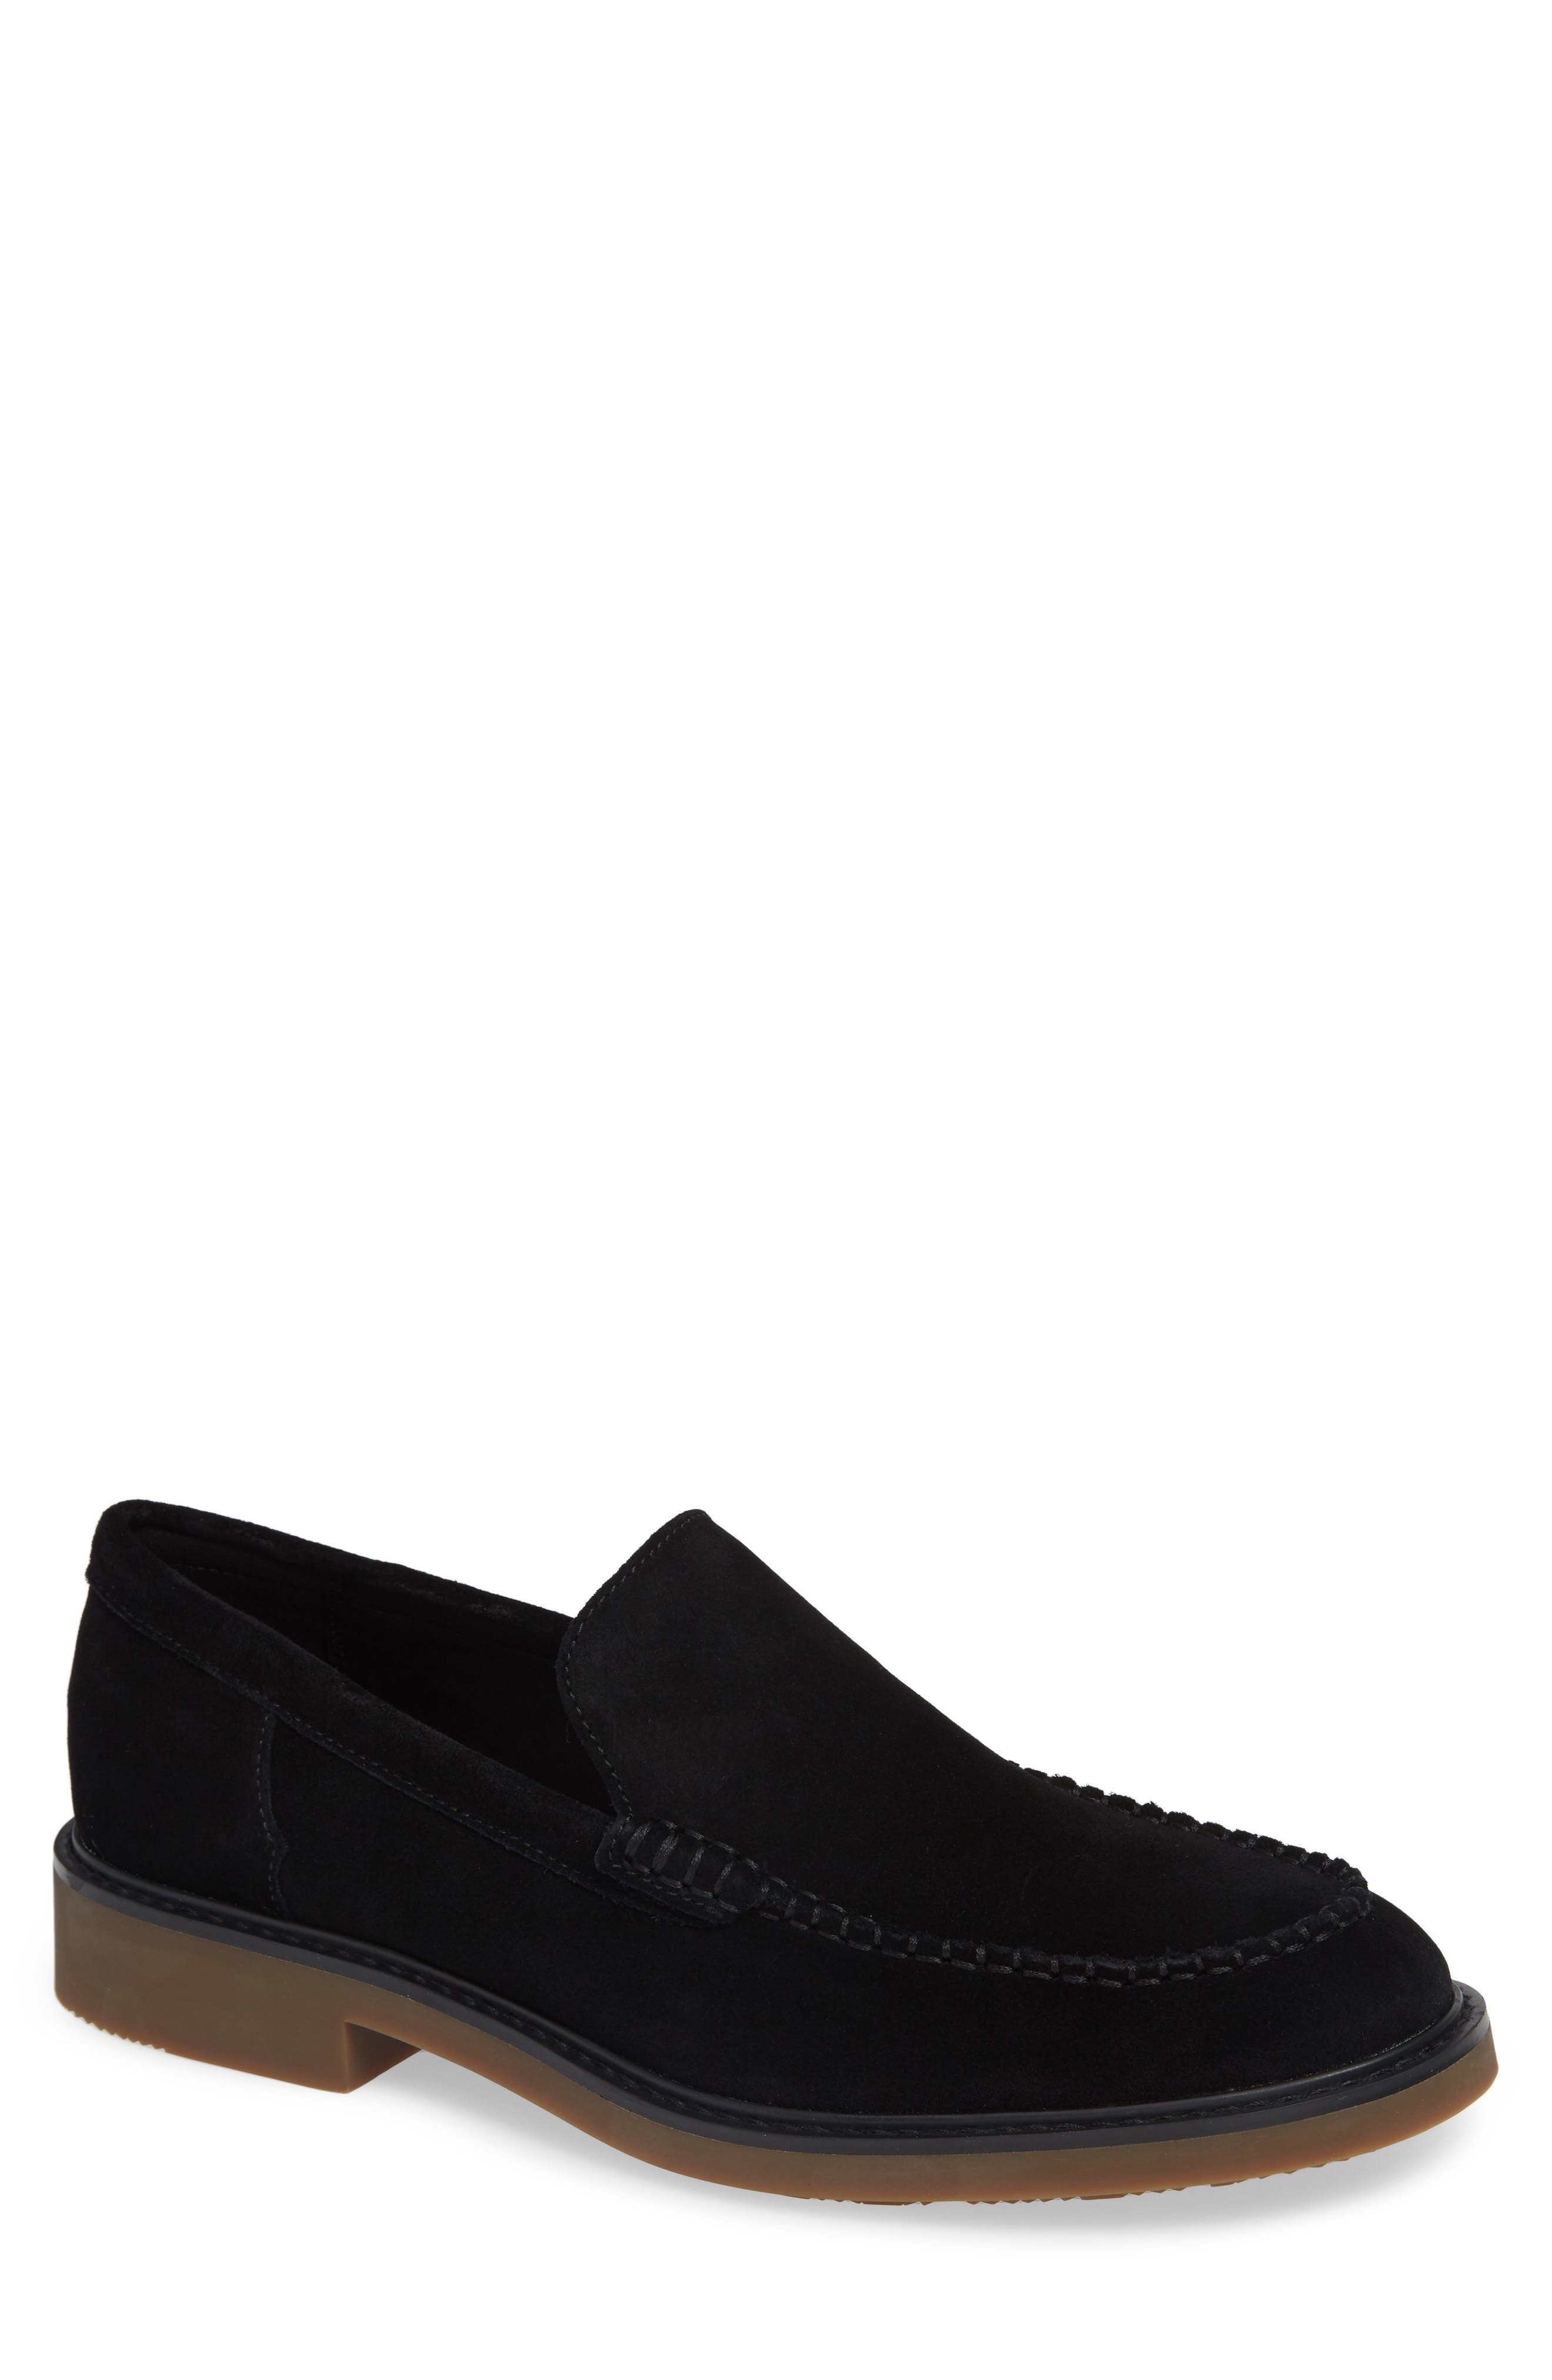 Vance Apron Toe Loafer,                             Main thumbnail 1, color,                             BLACK CALF SUEDE